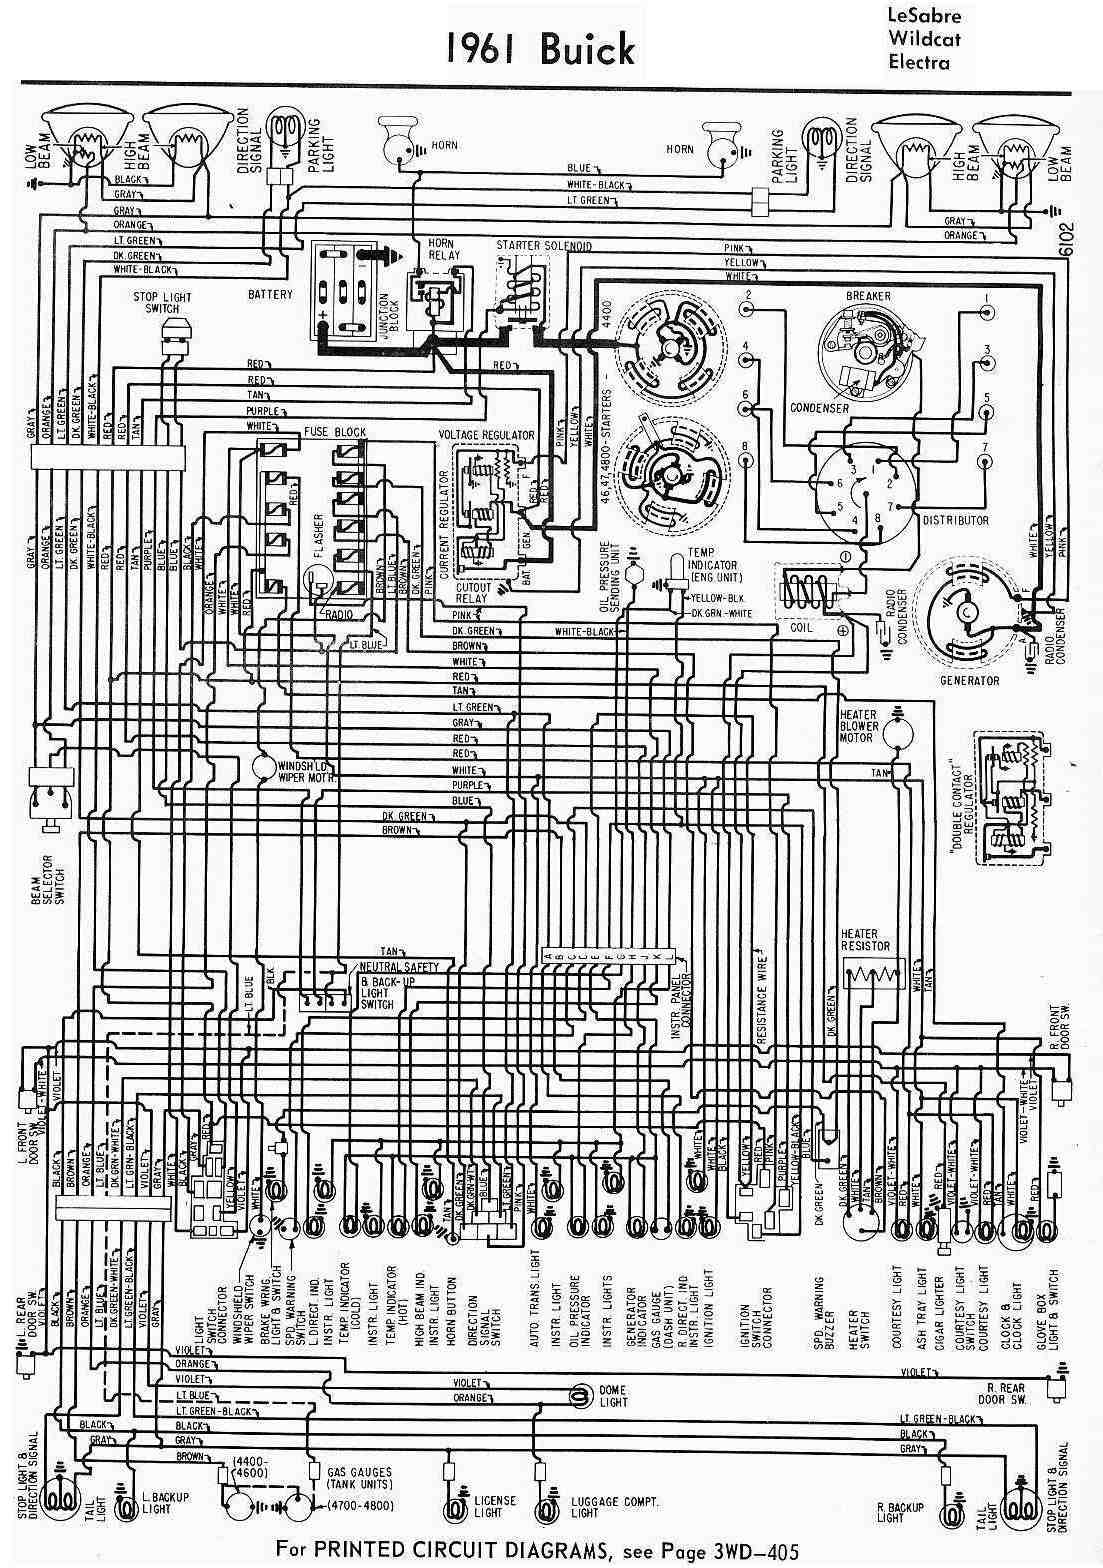 1999 s10 radio wiring diagram xmtd temperature controller december 2011 all about diagrams